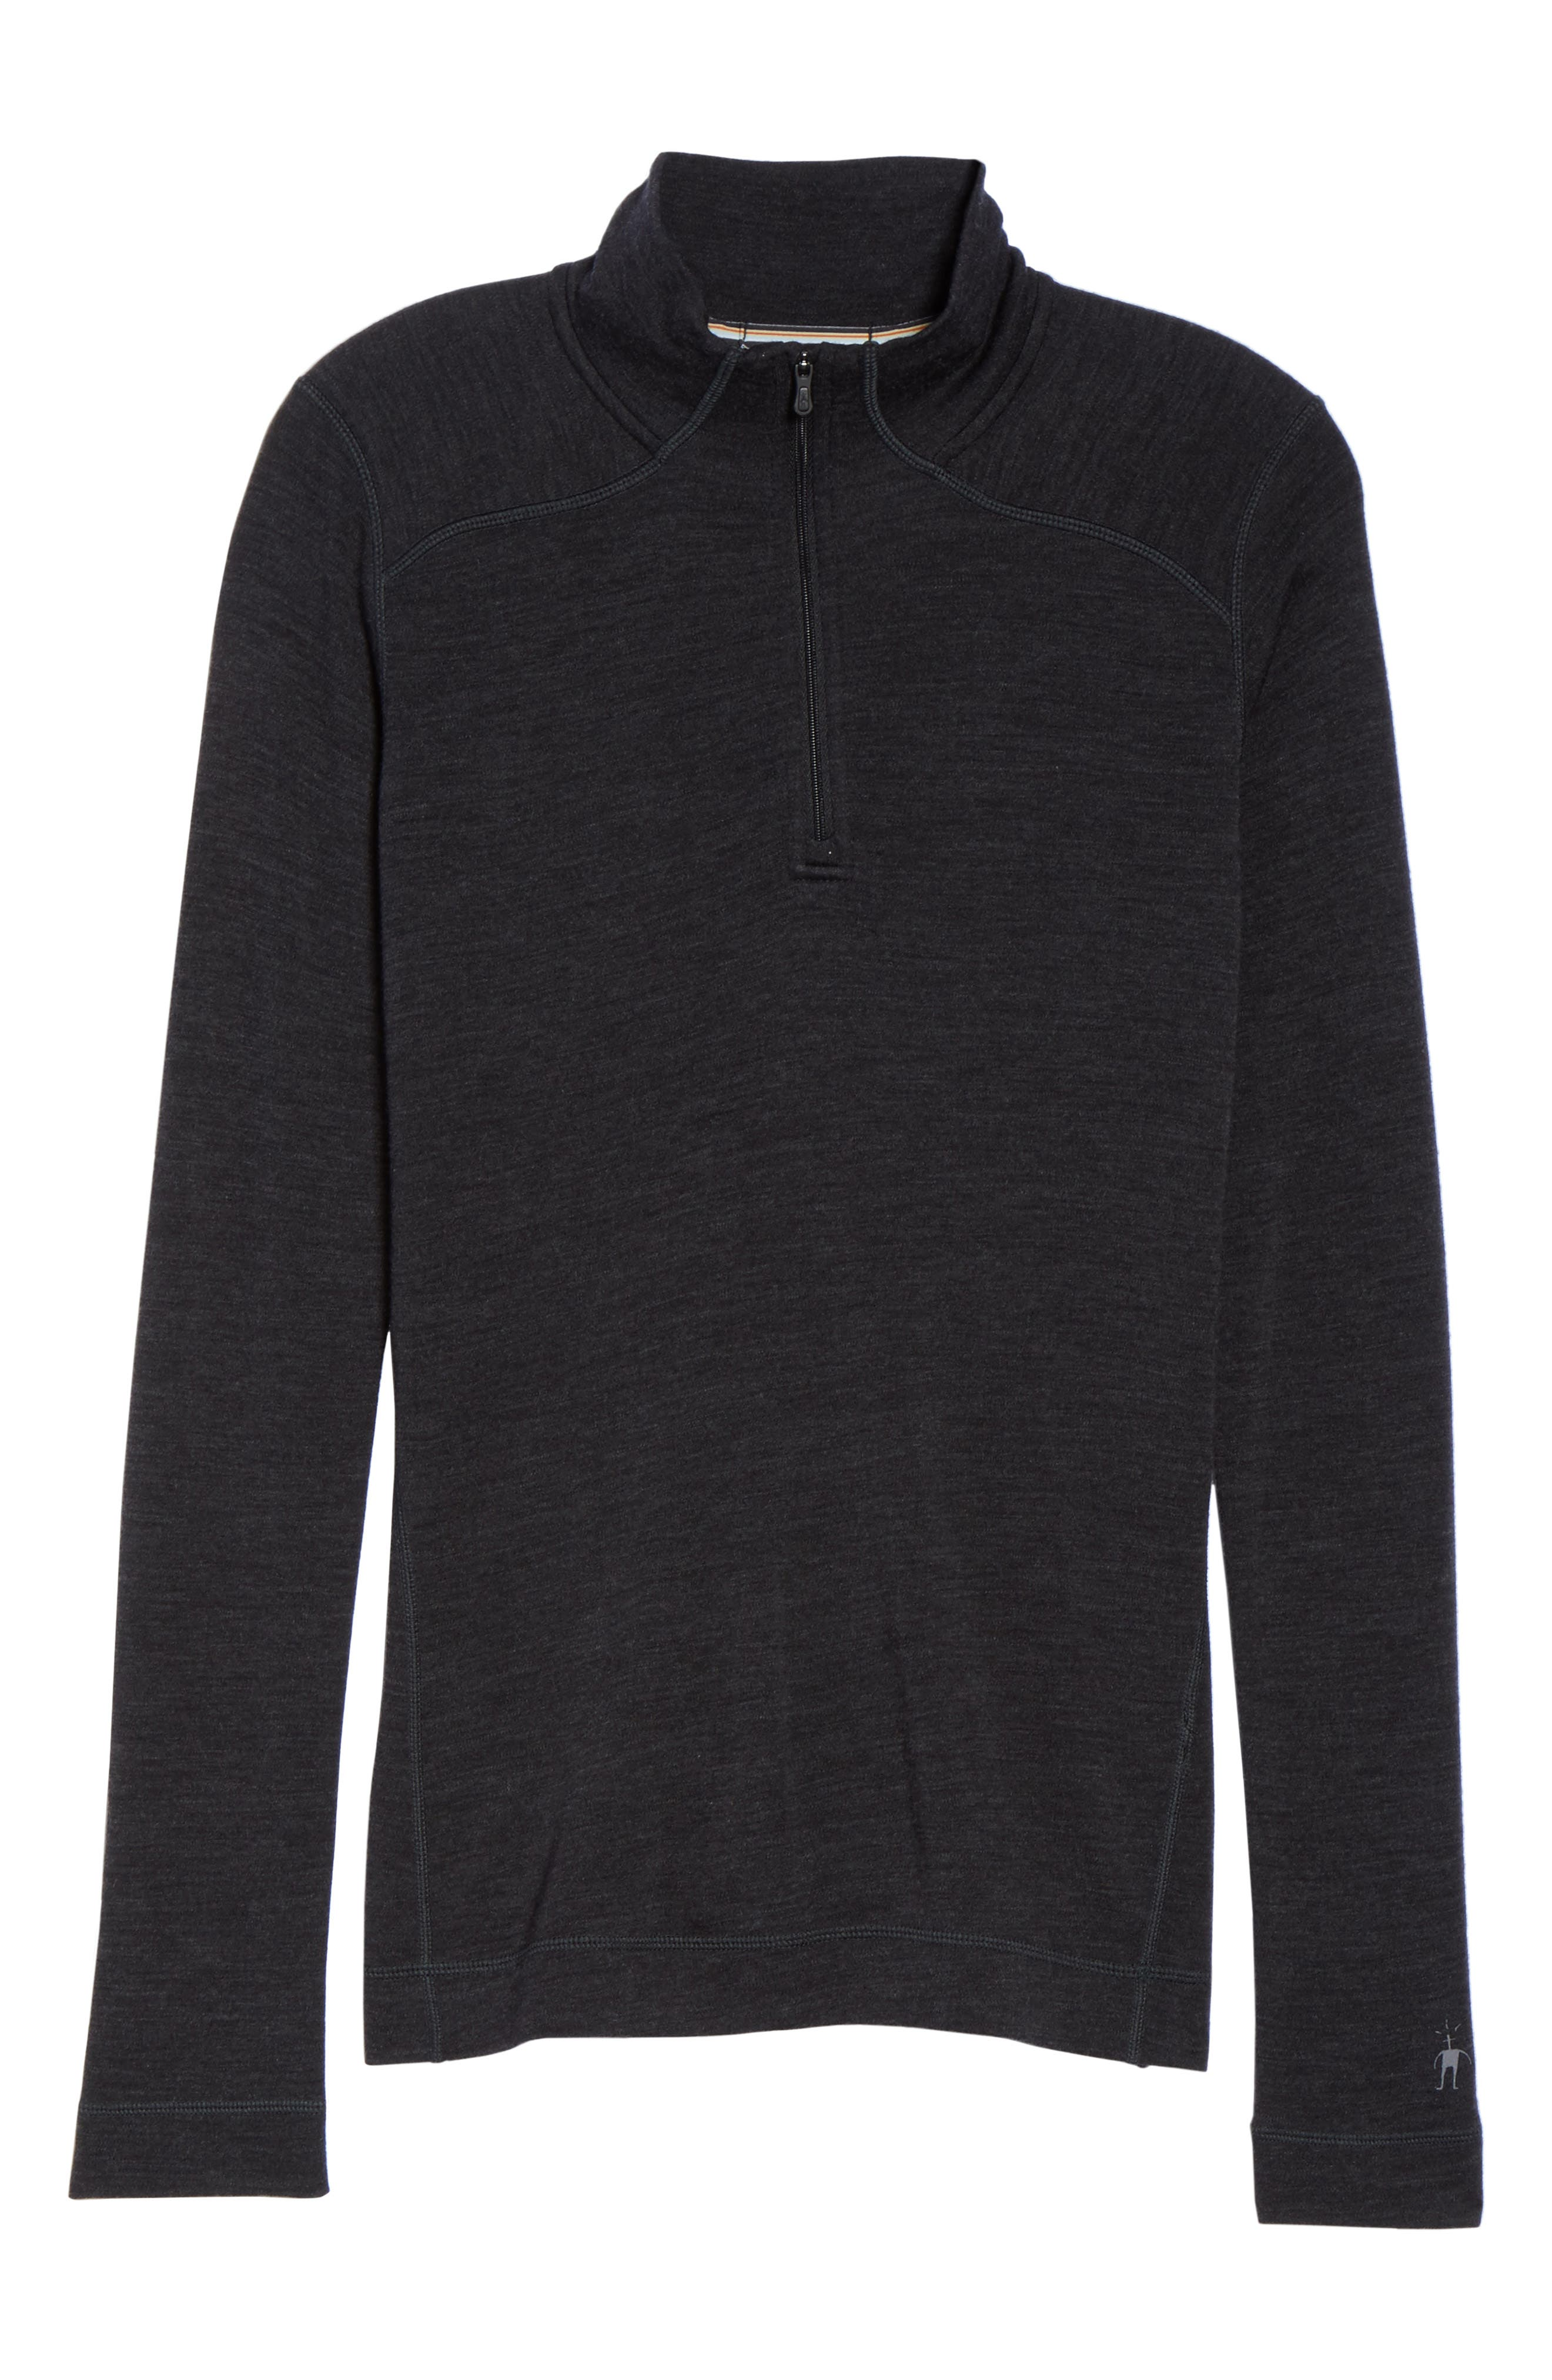 Merino 250 Base Pattern Layer Quarter Zip Top,                             Alternate thumbnail 7, color,                             CHARCOAL HEATHER